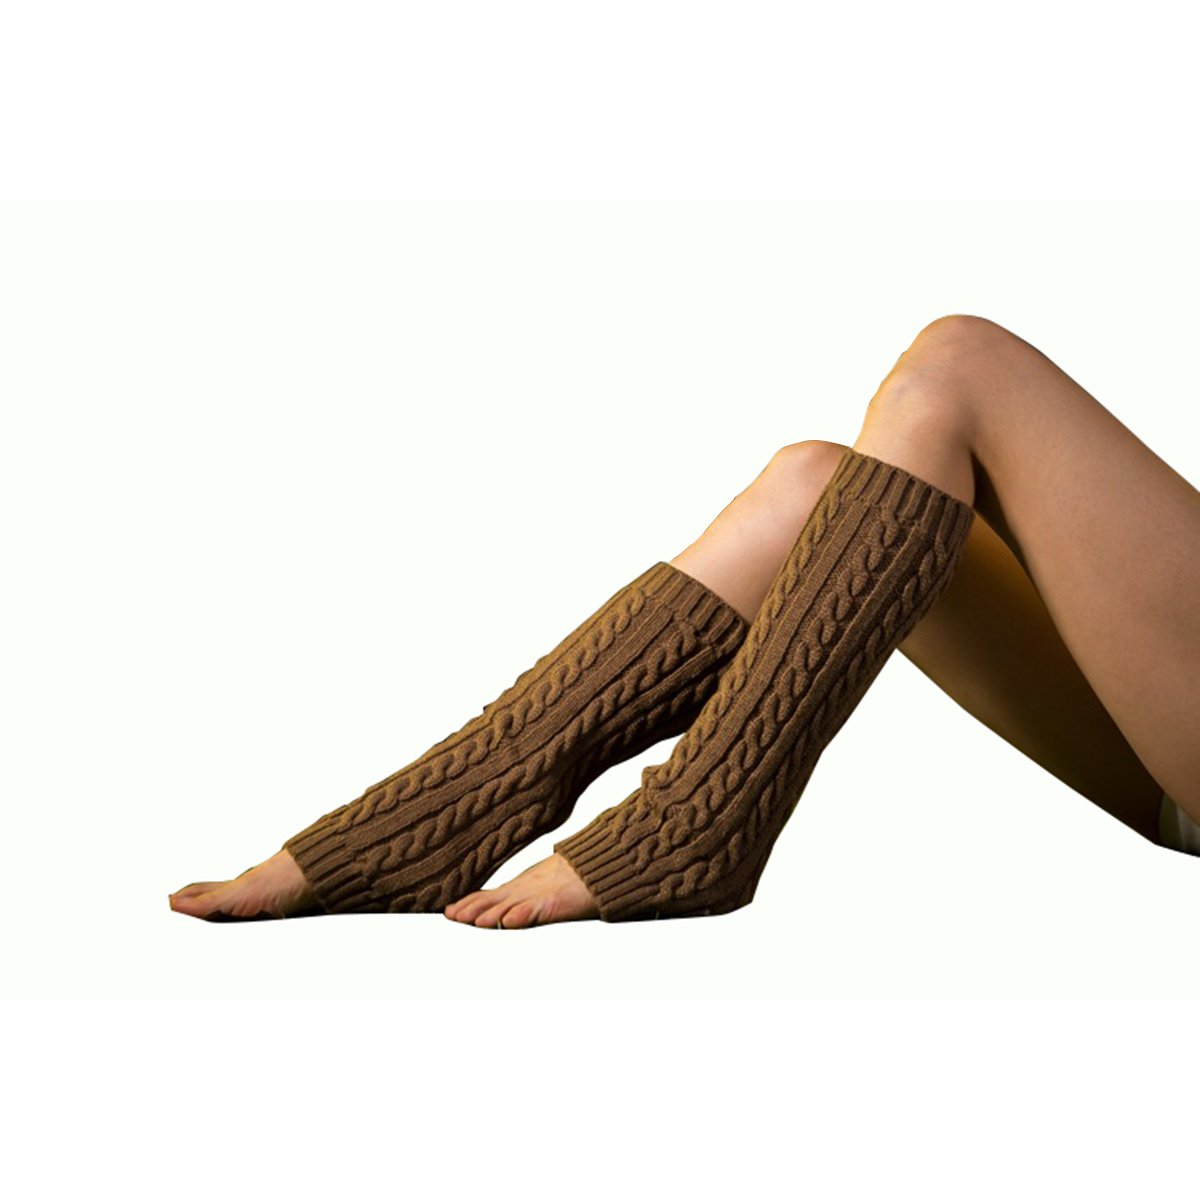 Unisex Cable Knit Leg Warmers Knitted Crochet Long Socks